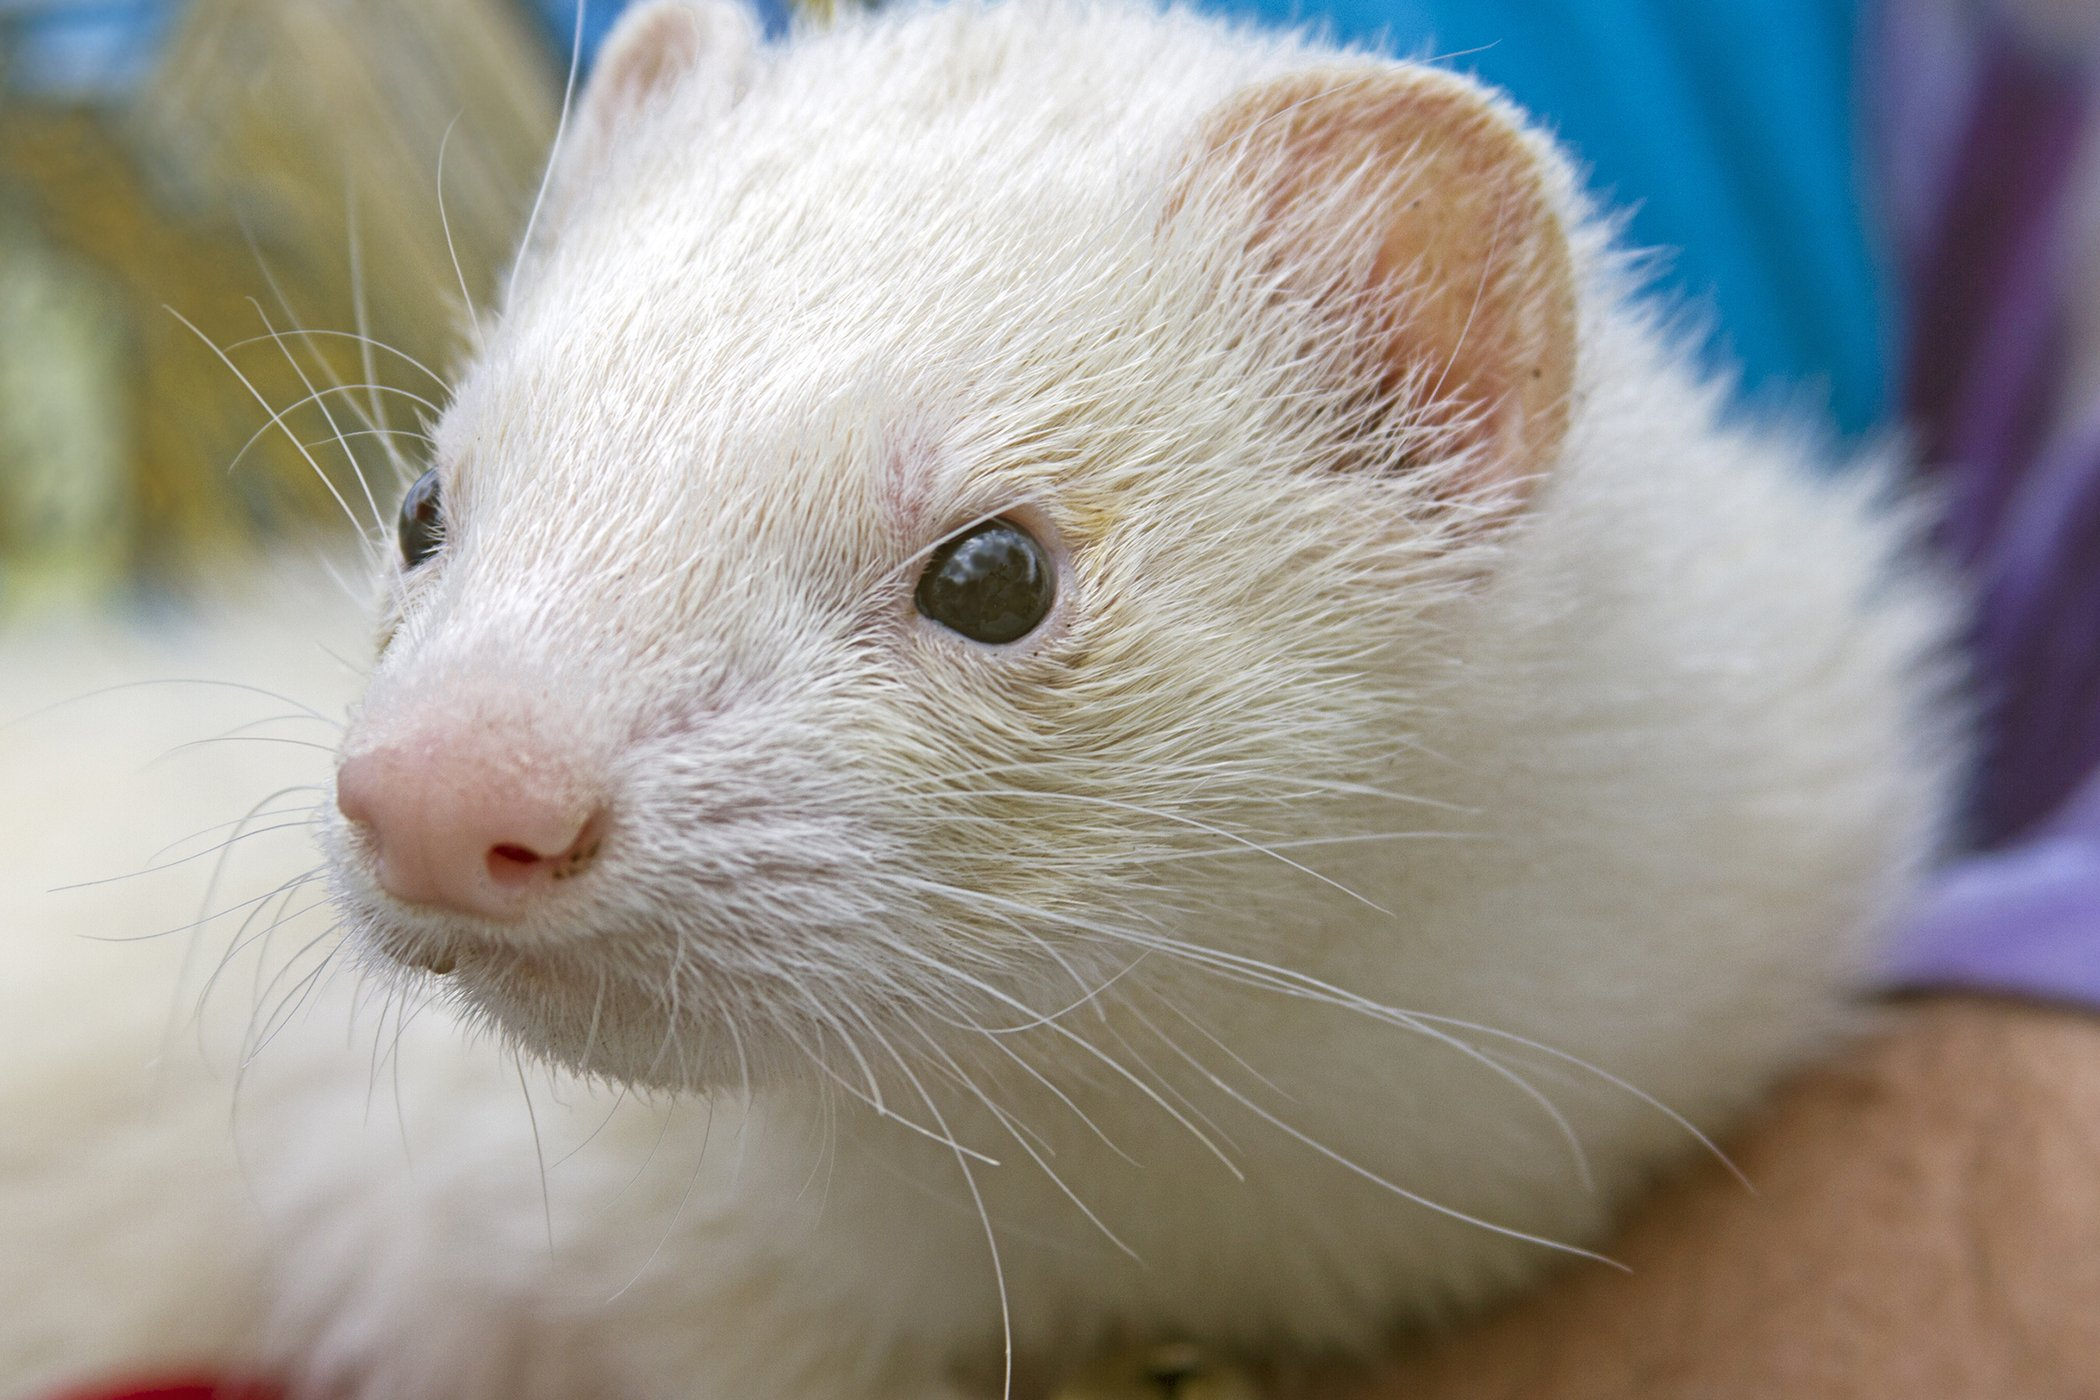 Uterine Infection and Pus in Ferrets